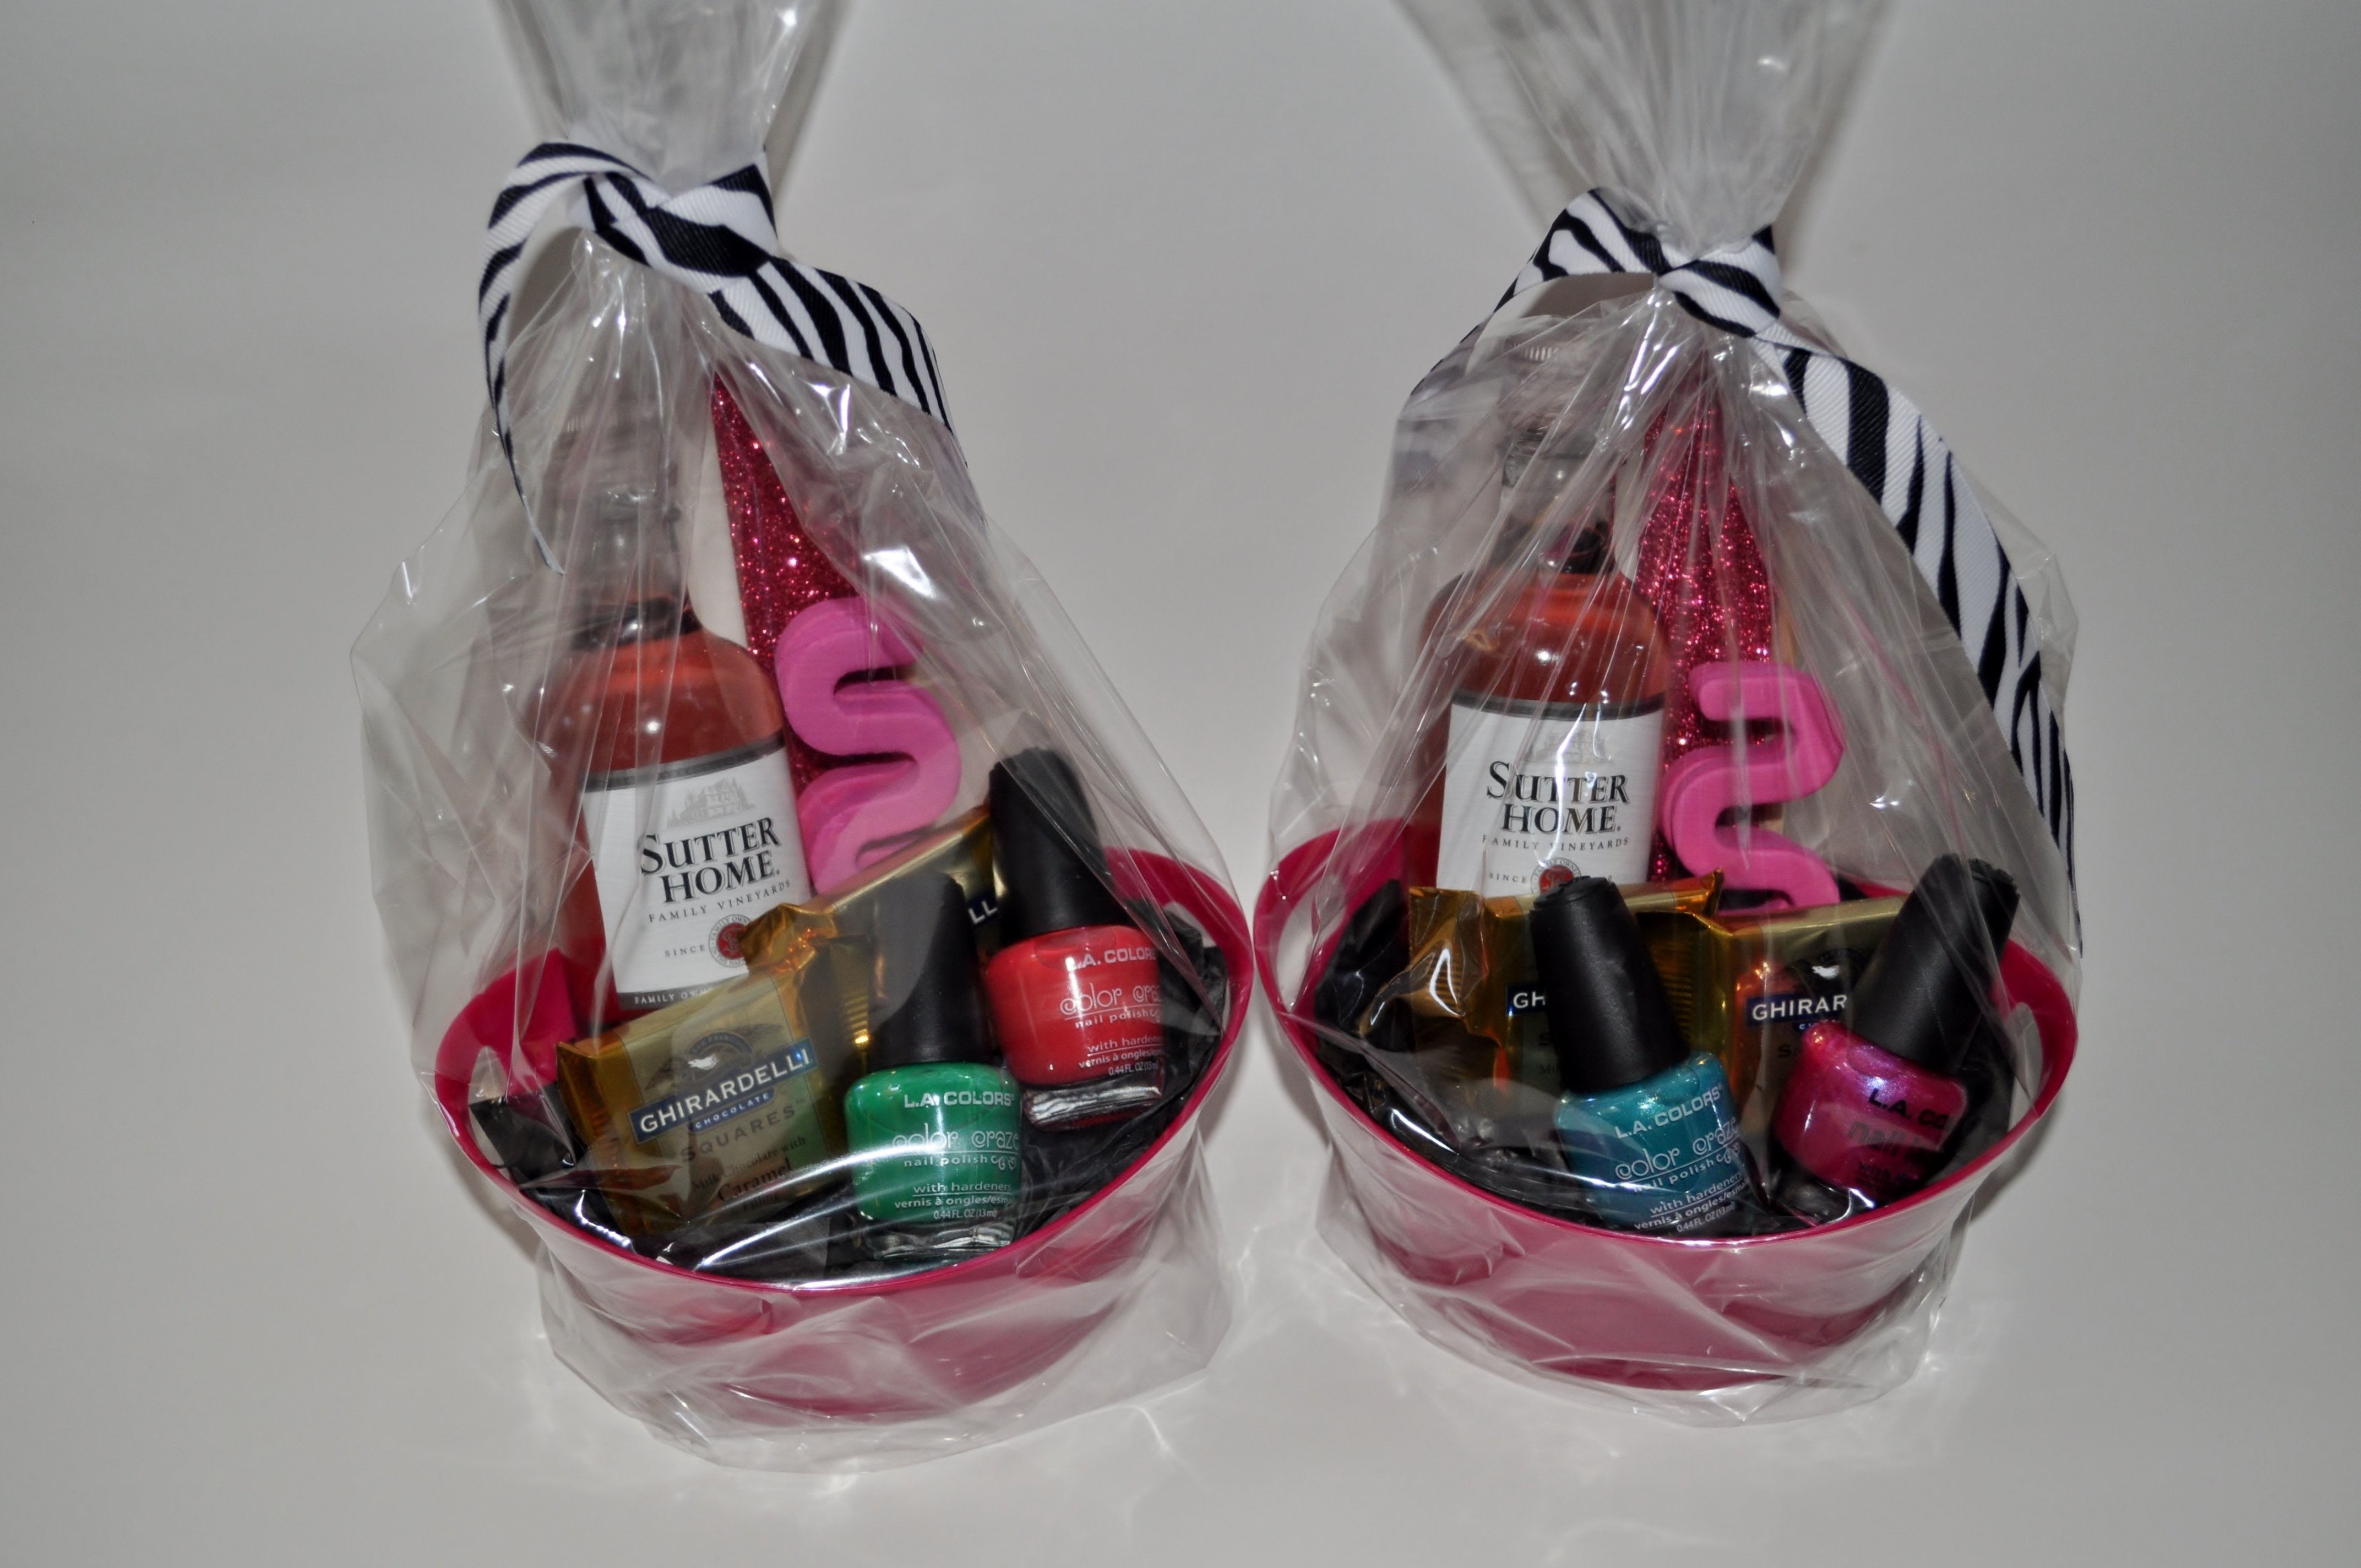 10 Lovely Girls Night Out Gift Ideas gift baskets for girls night out alexis cailey pinterest 2020